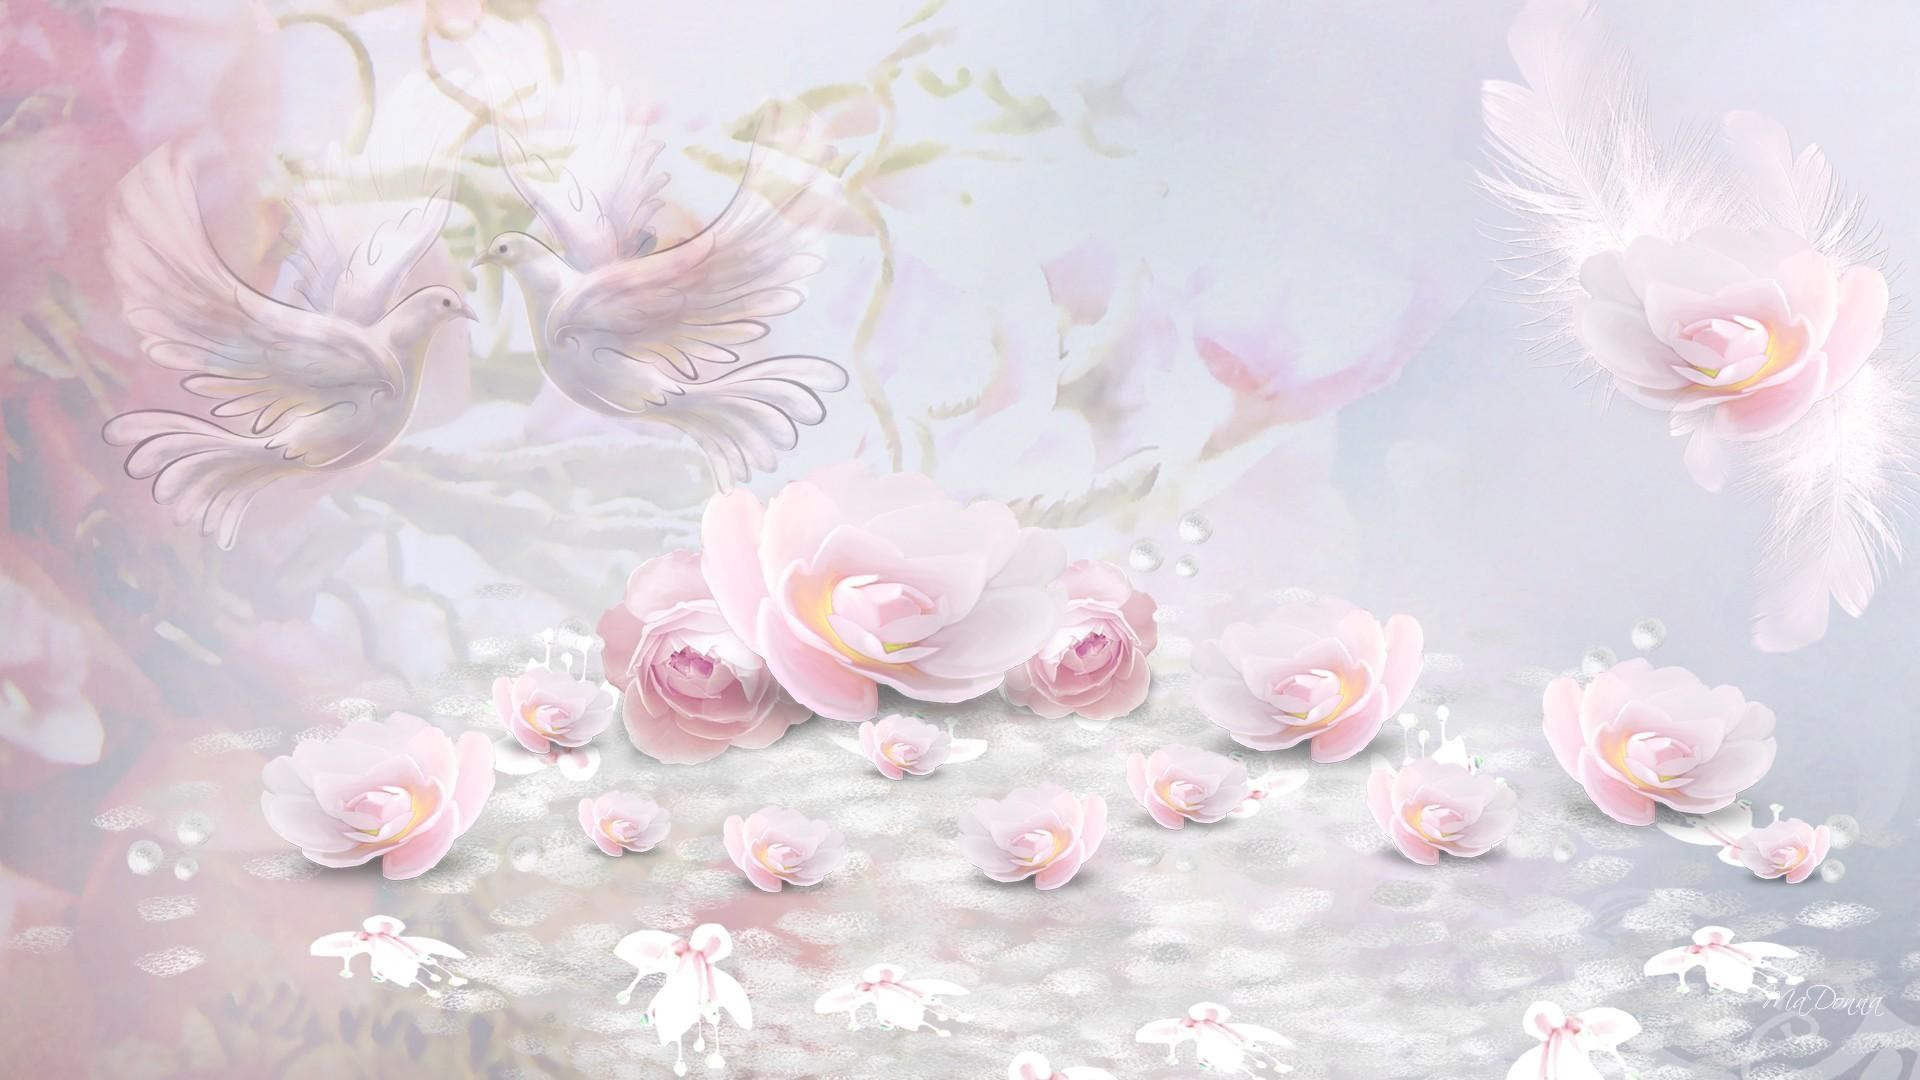 Wall Paper Wide Pink Rose Colours Soft Nature Flower: Soft Pink Wallpaper (39+ Images